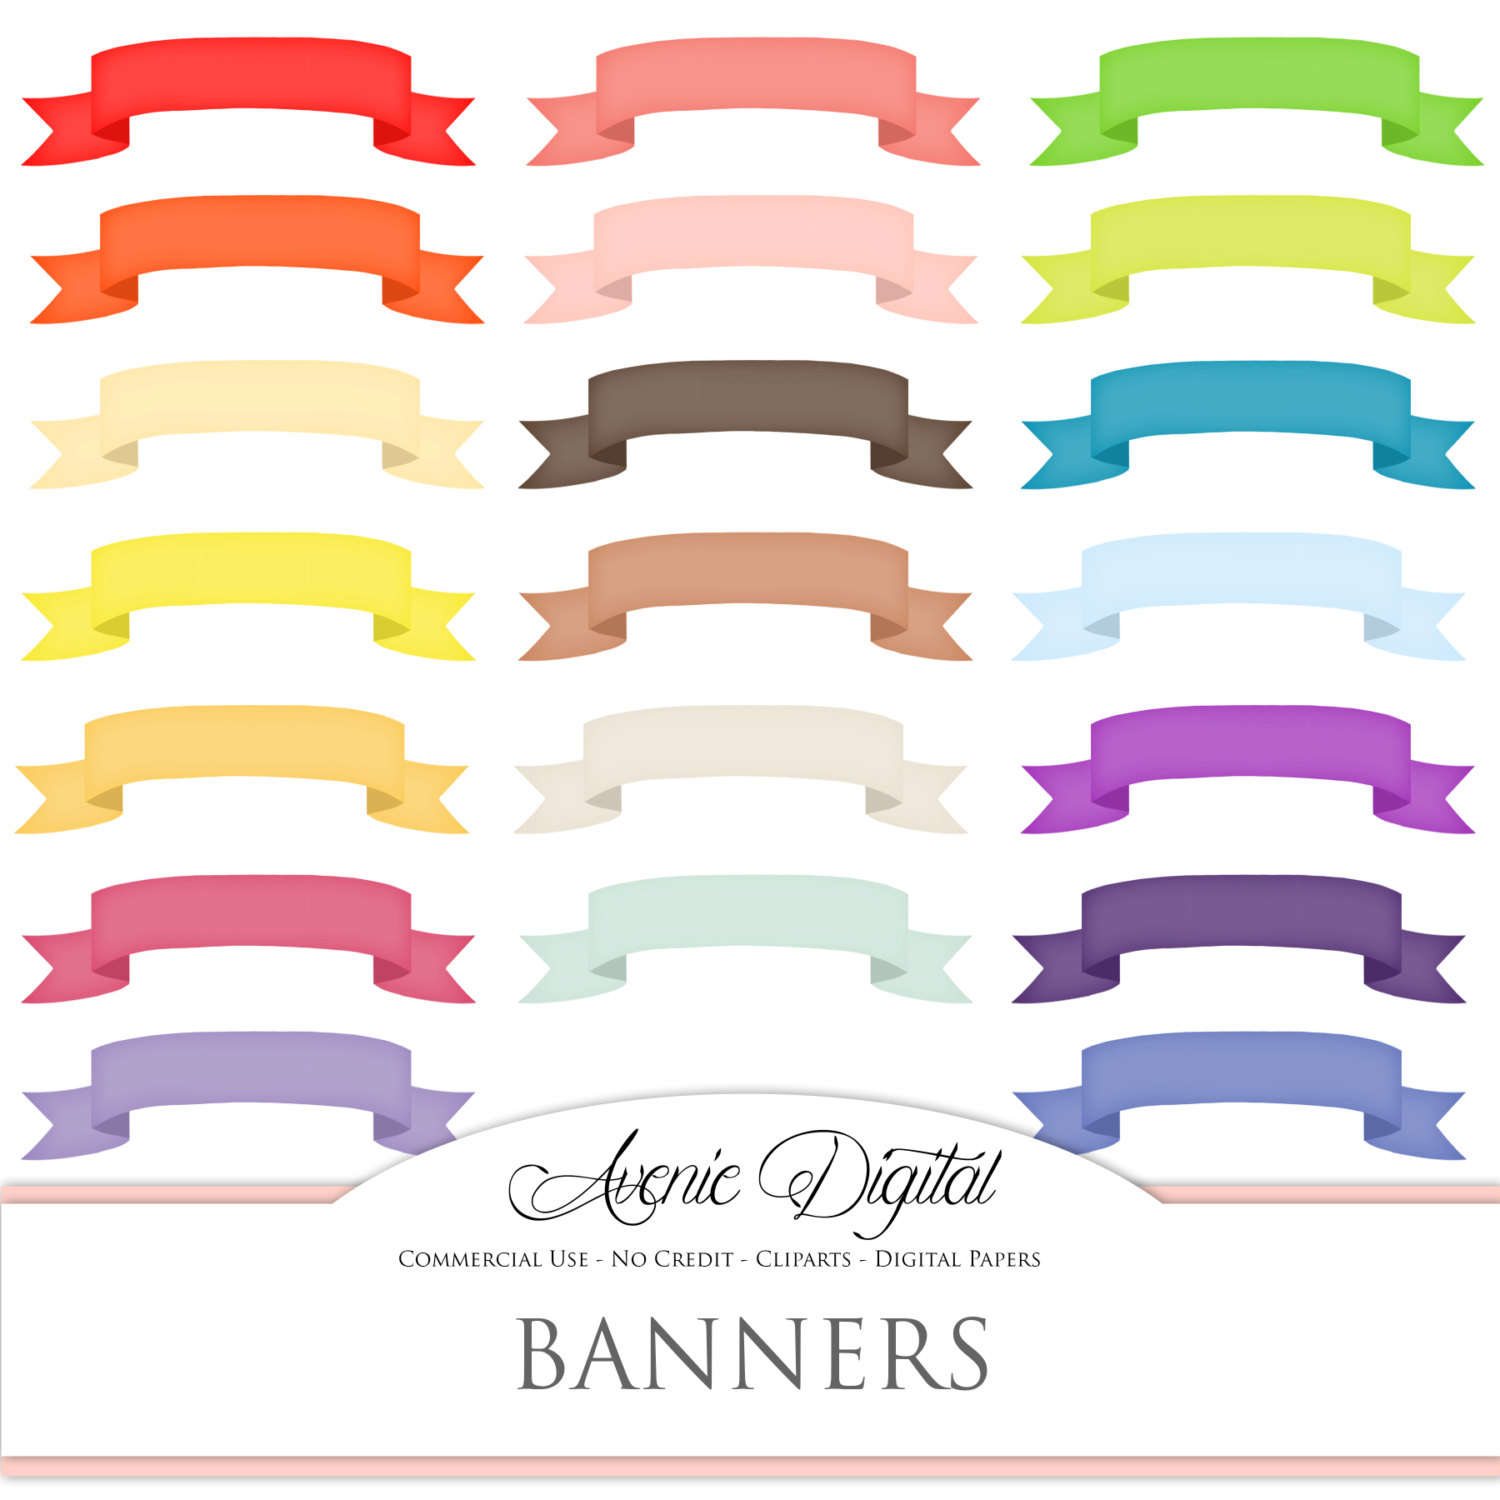 Peach clipart banner File  is Scrapbooking Banner